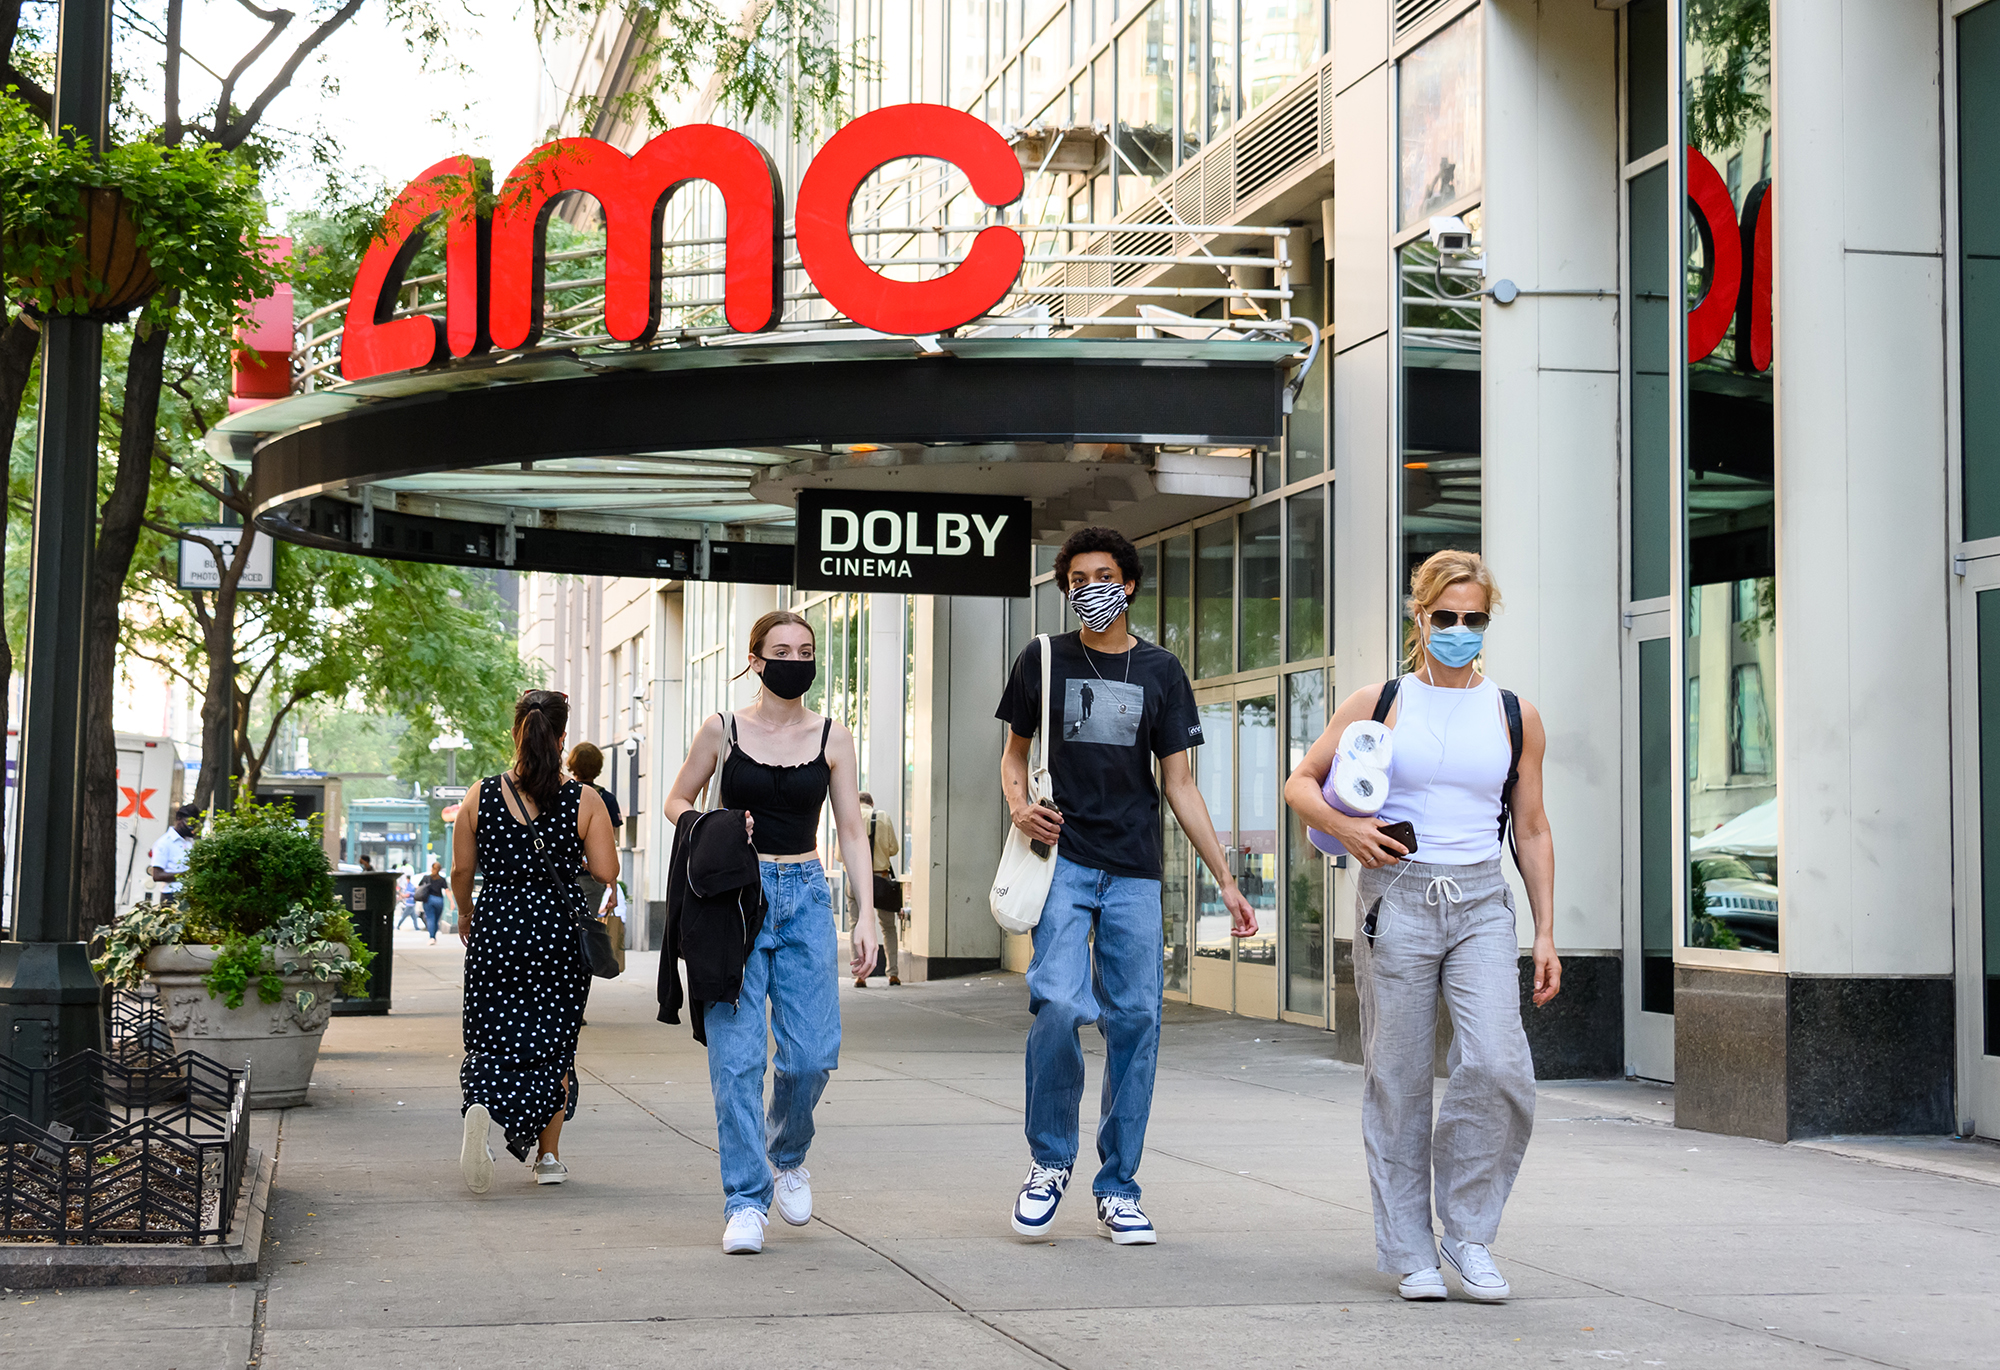 People wear protective face masks outside the AMC 34th Street 14 movie theater as the city continues Phase 4 of re-opening following restrictions imposed to slow the spread of coronavirus on July 31, 2020 in New York City. (Noam Galai/Getty Images)